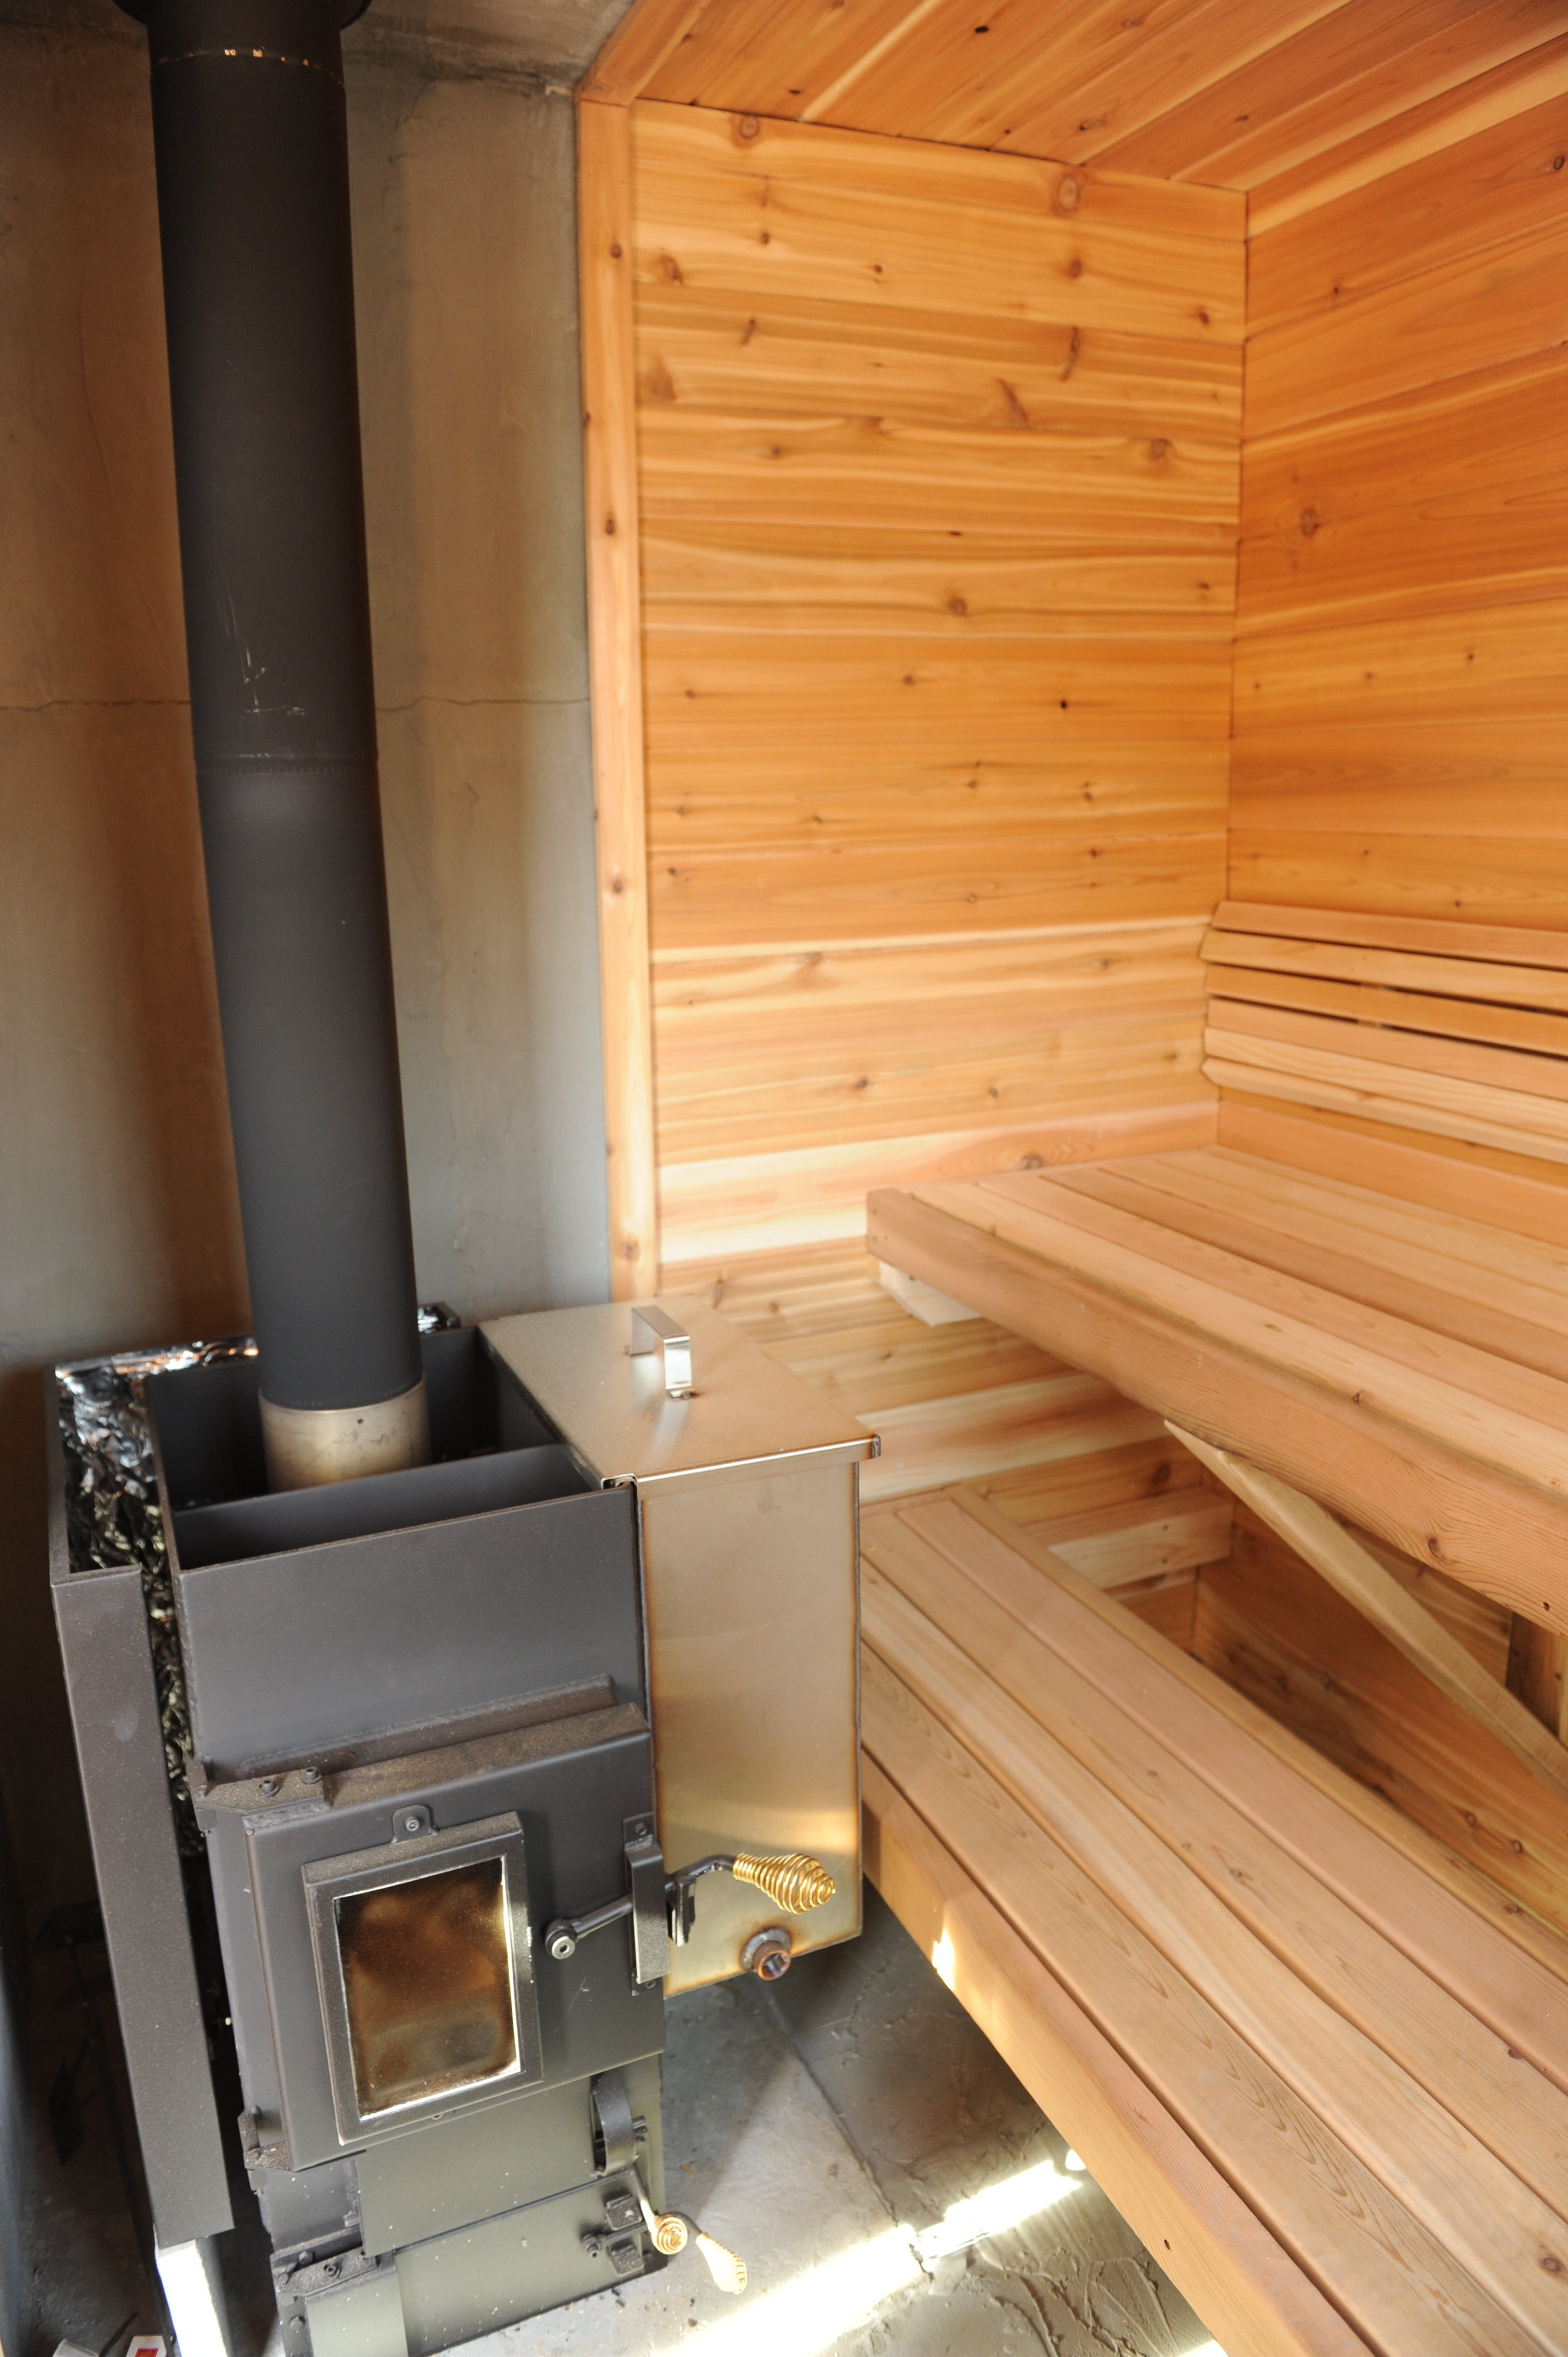 How to install a stove in the sauna with your own hands